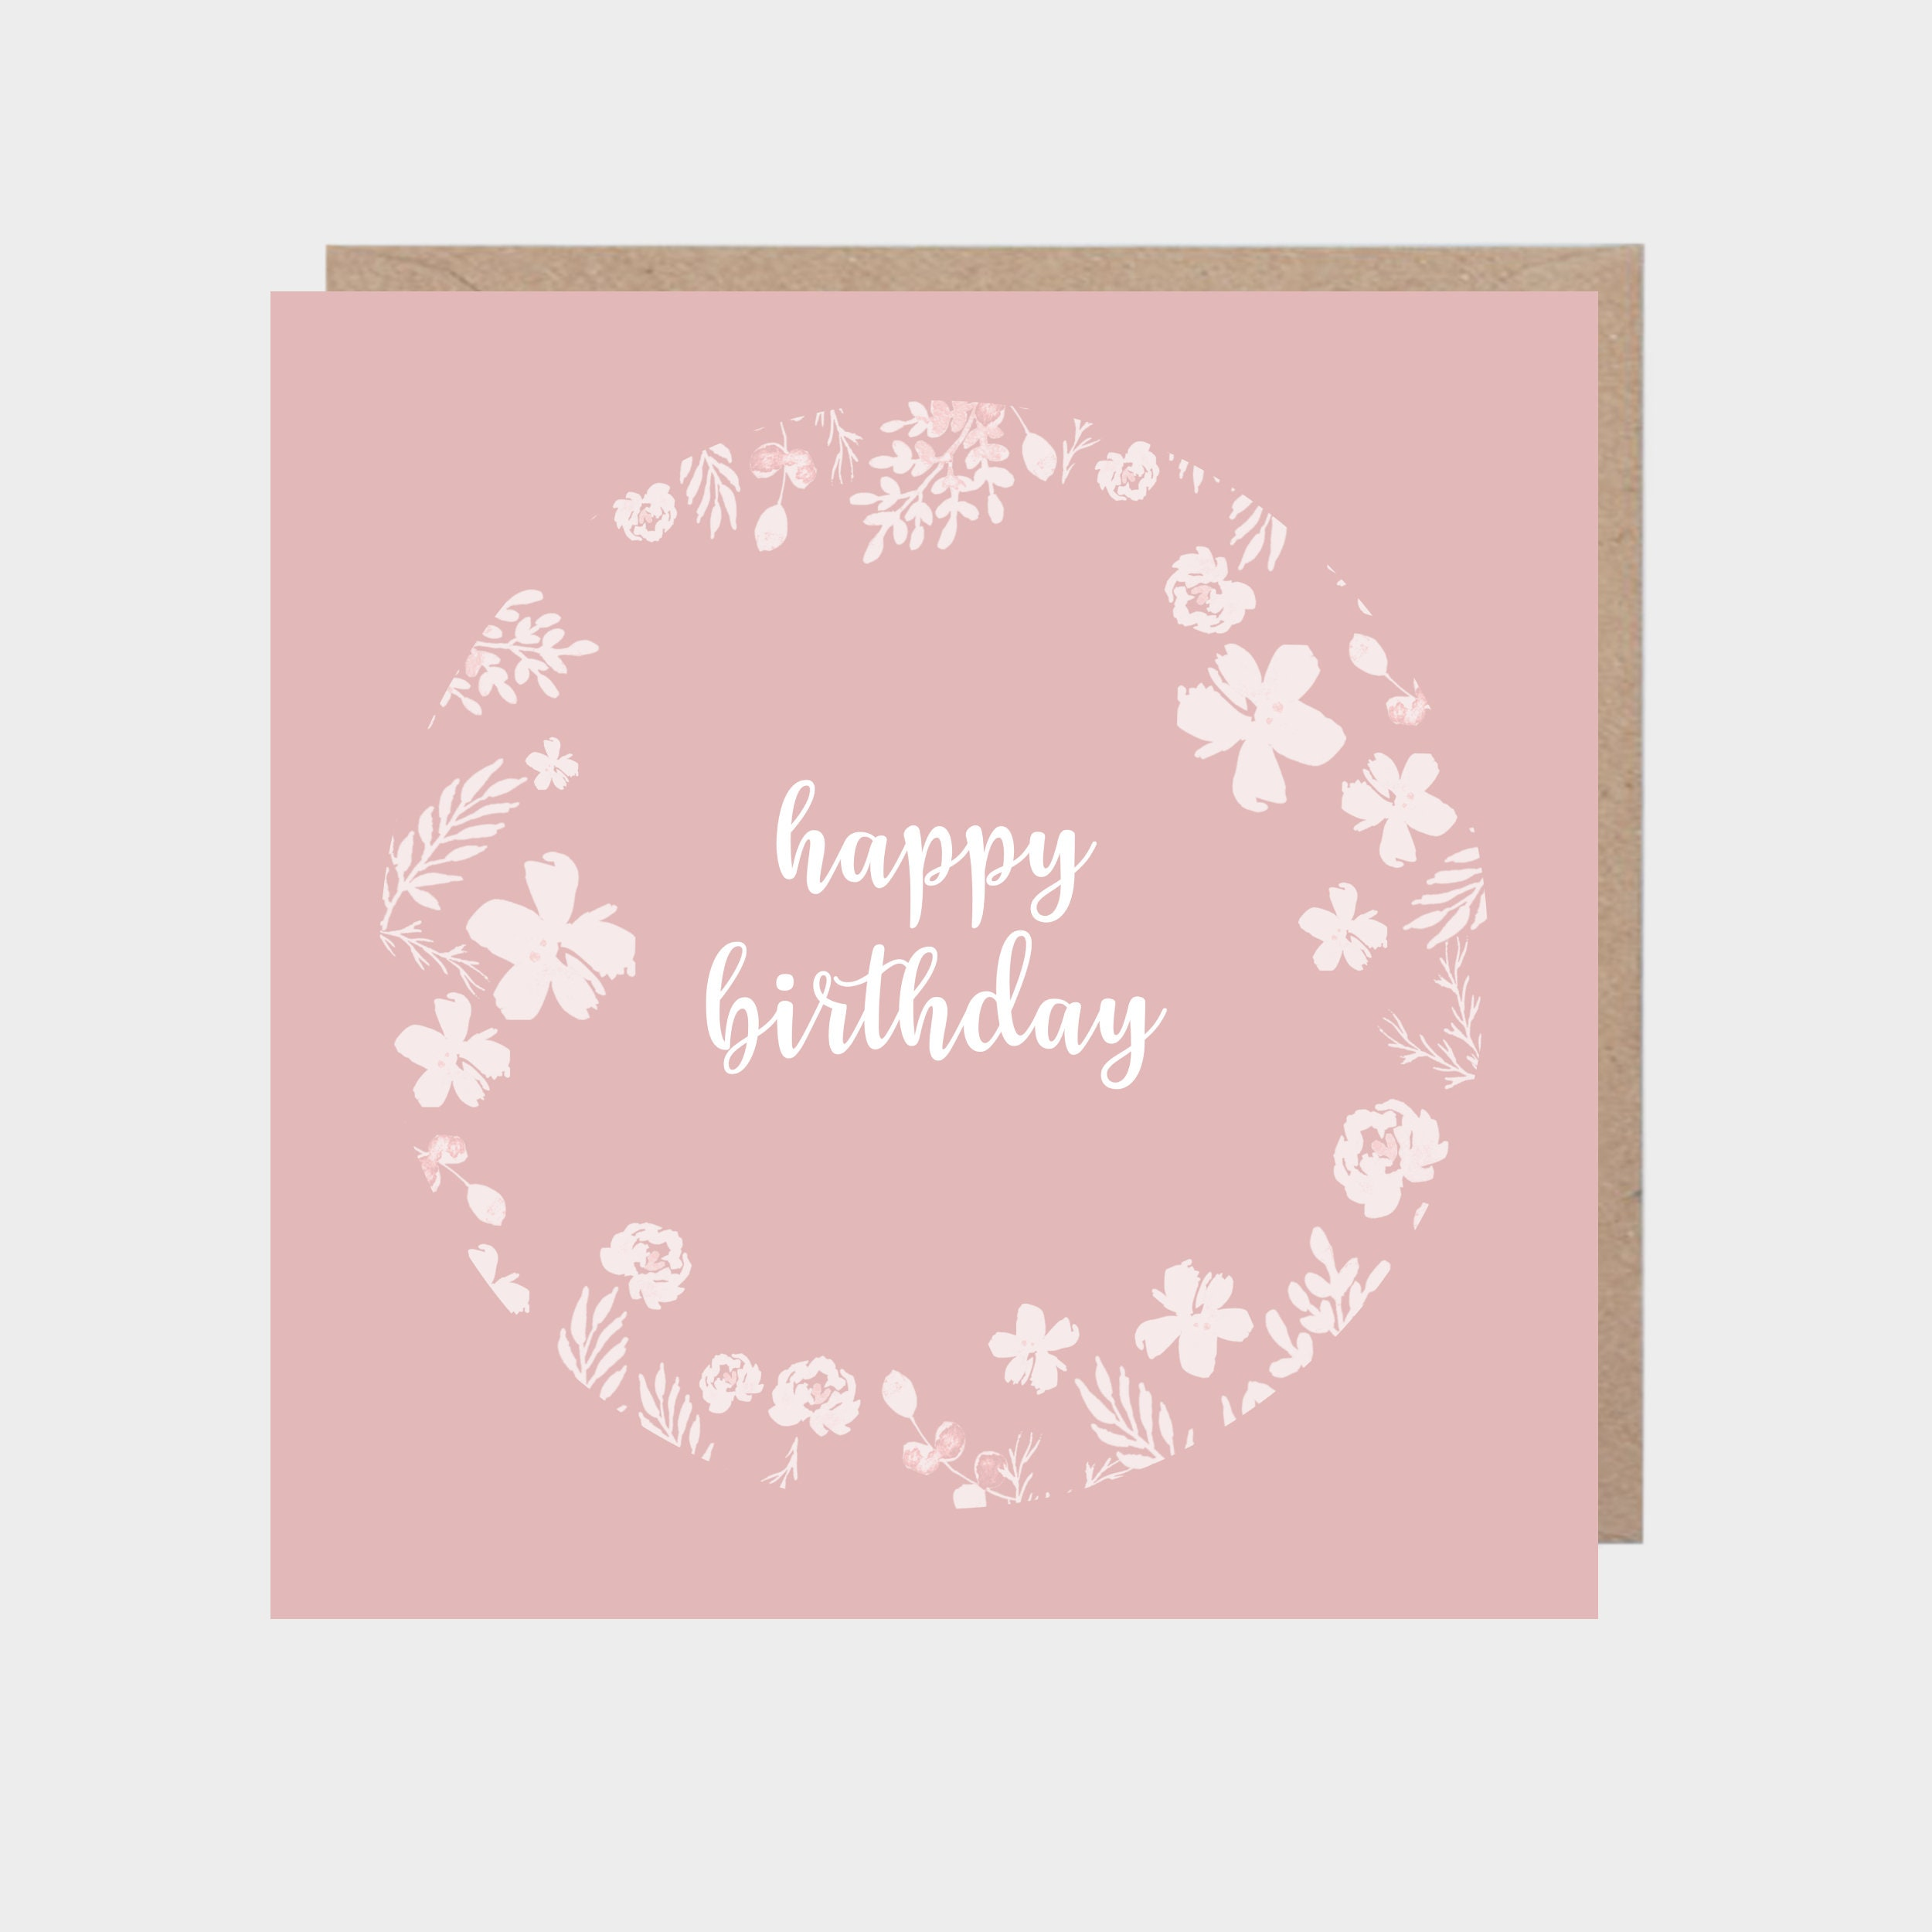 Pink card with illustrated white floral circle, with a brown kraft envelope.